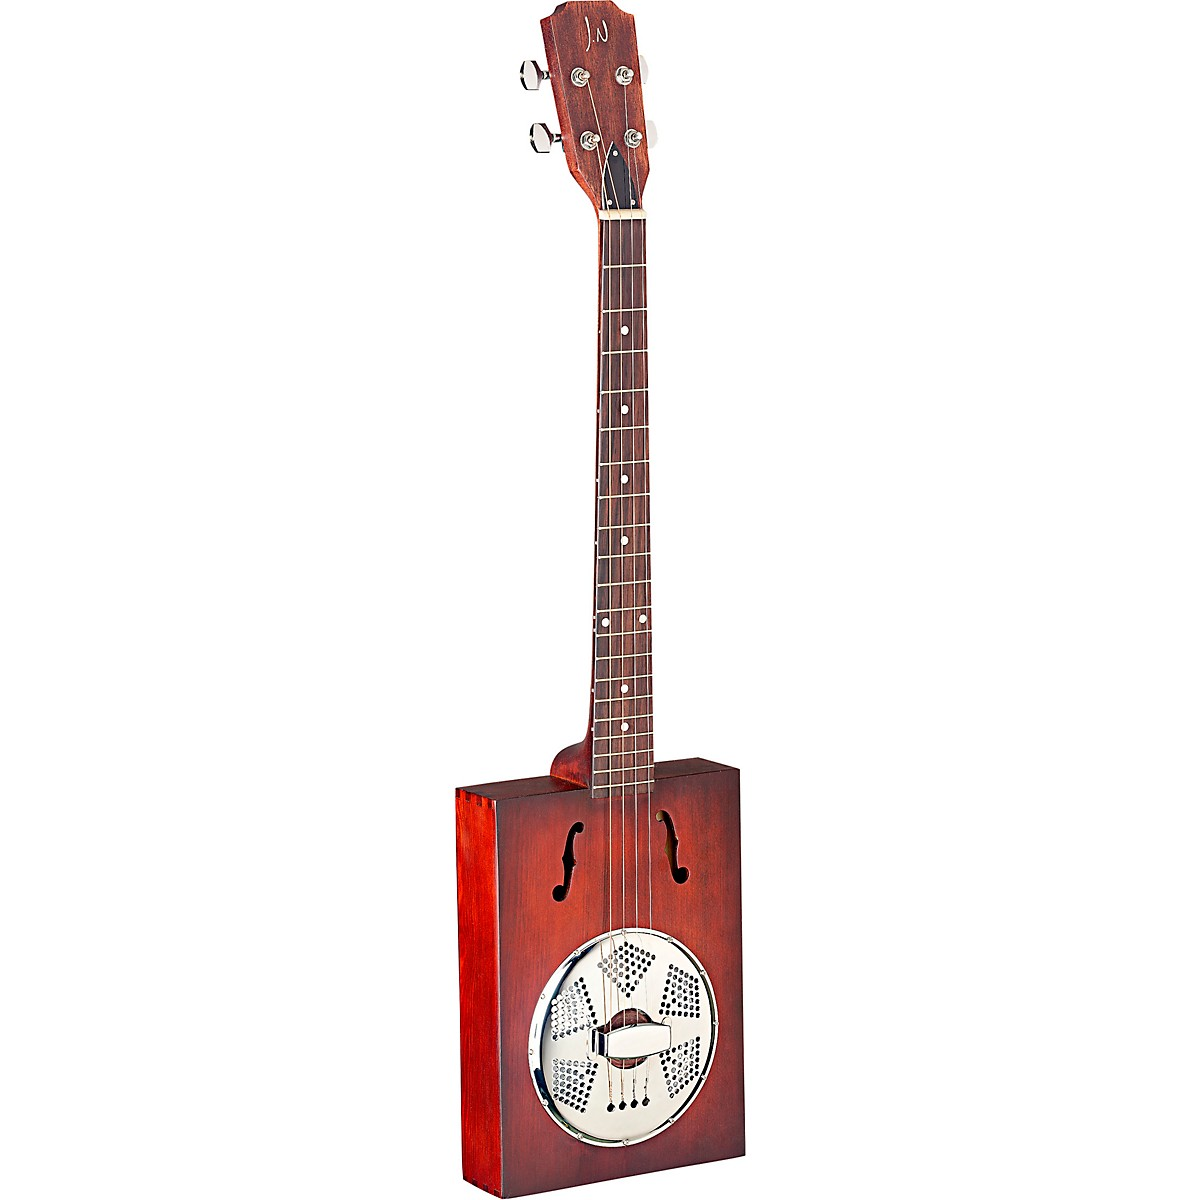 JN Guitars JN Guitars Cask Series Puncheon Cigar Box Resonator Guitar